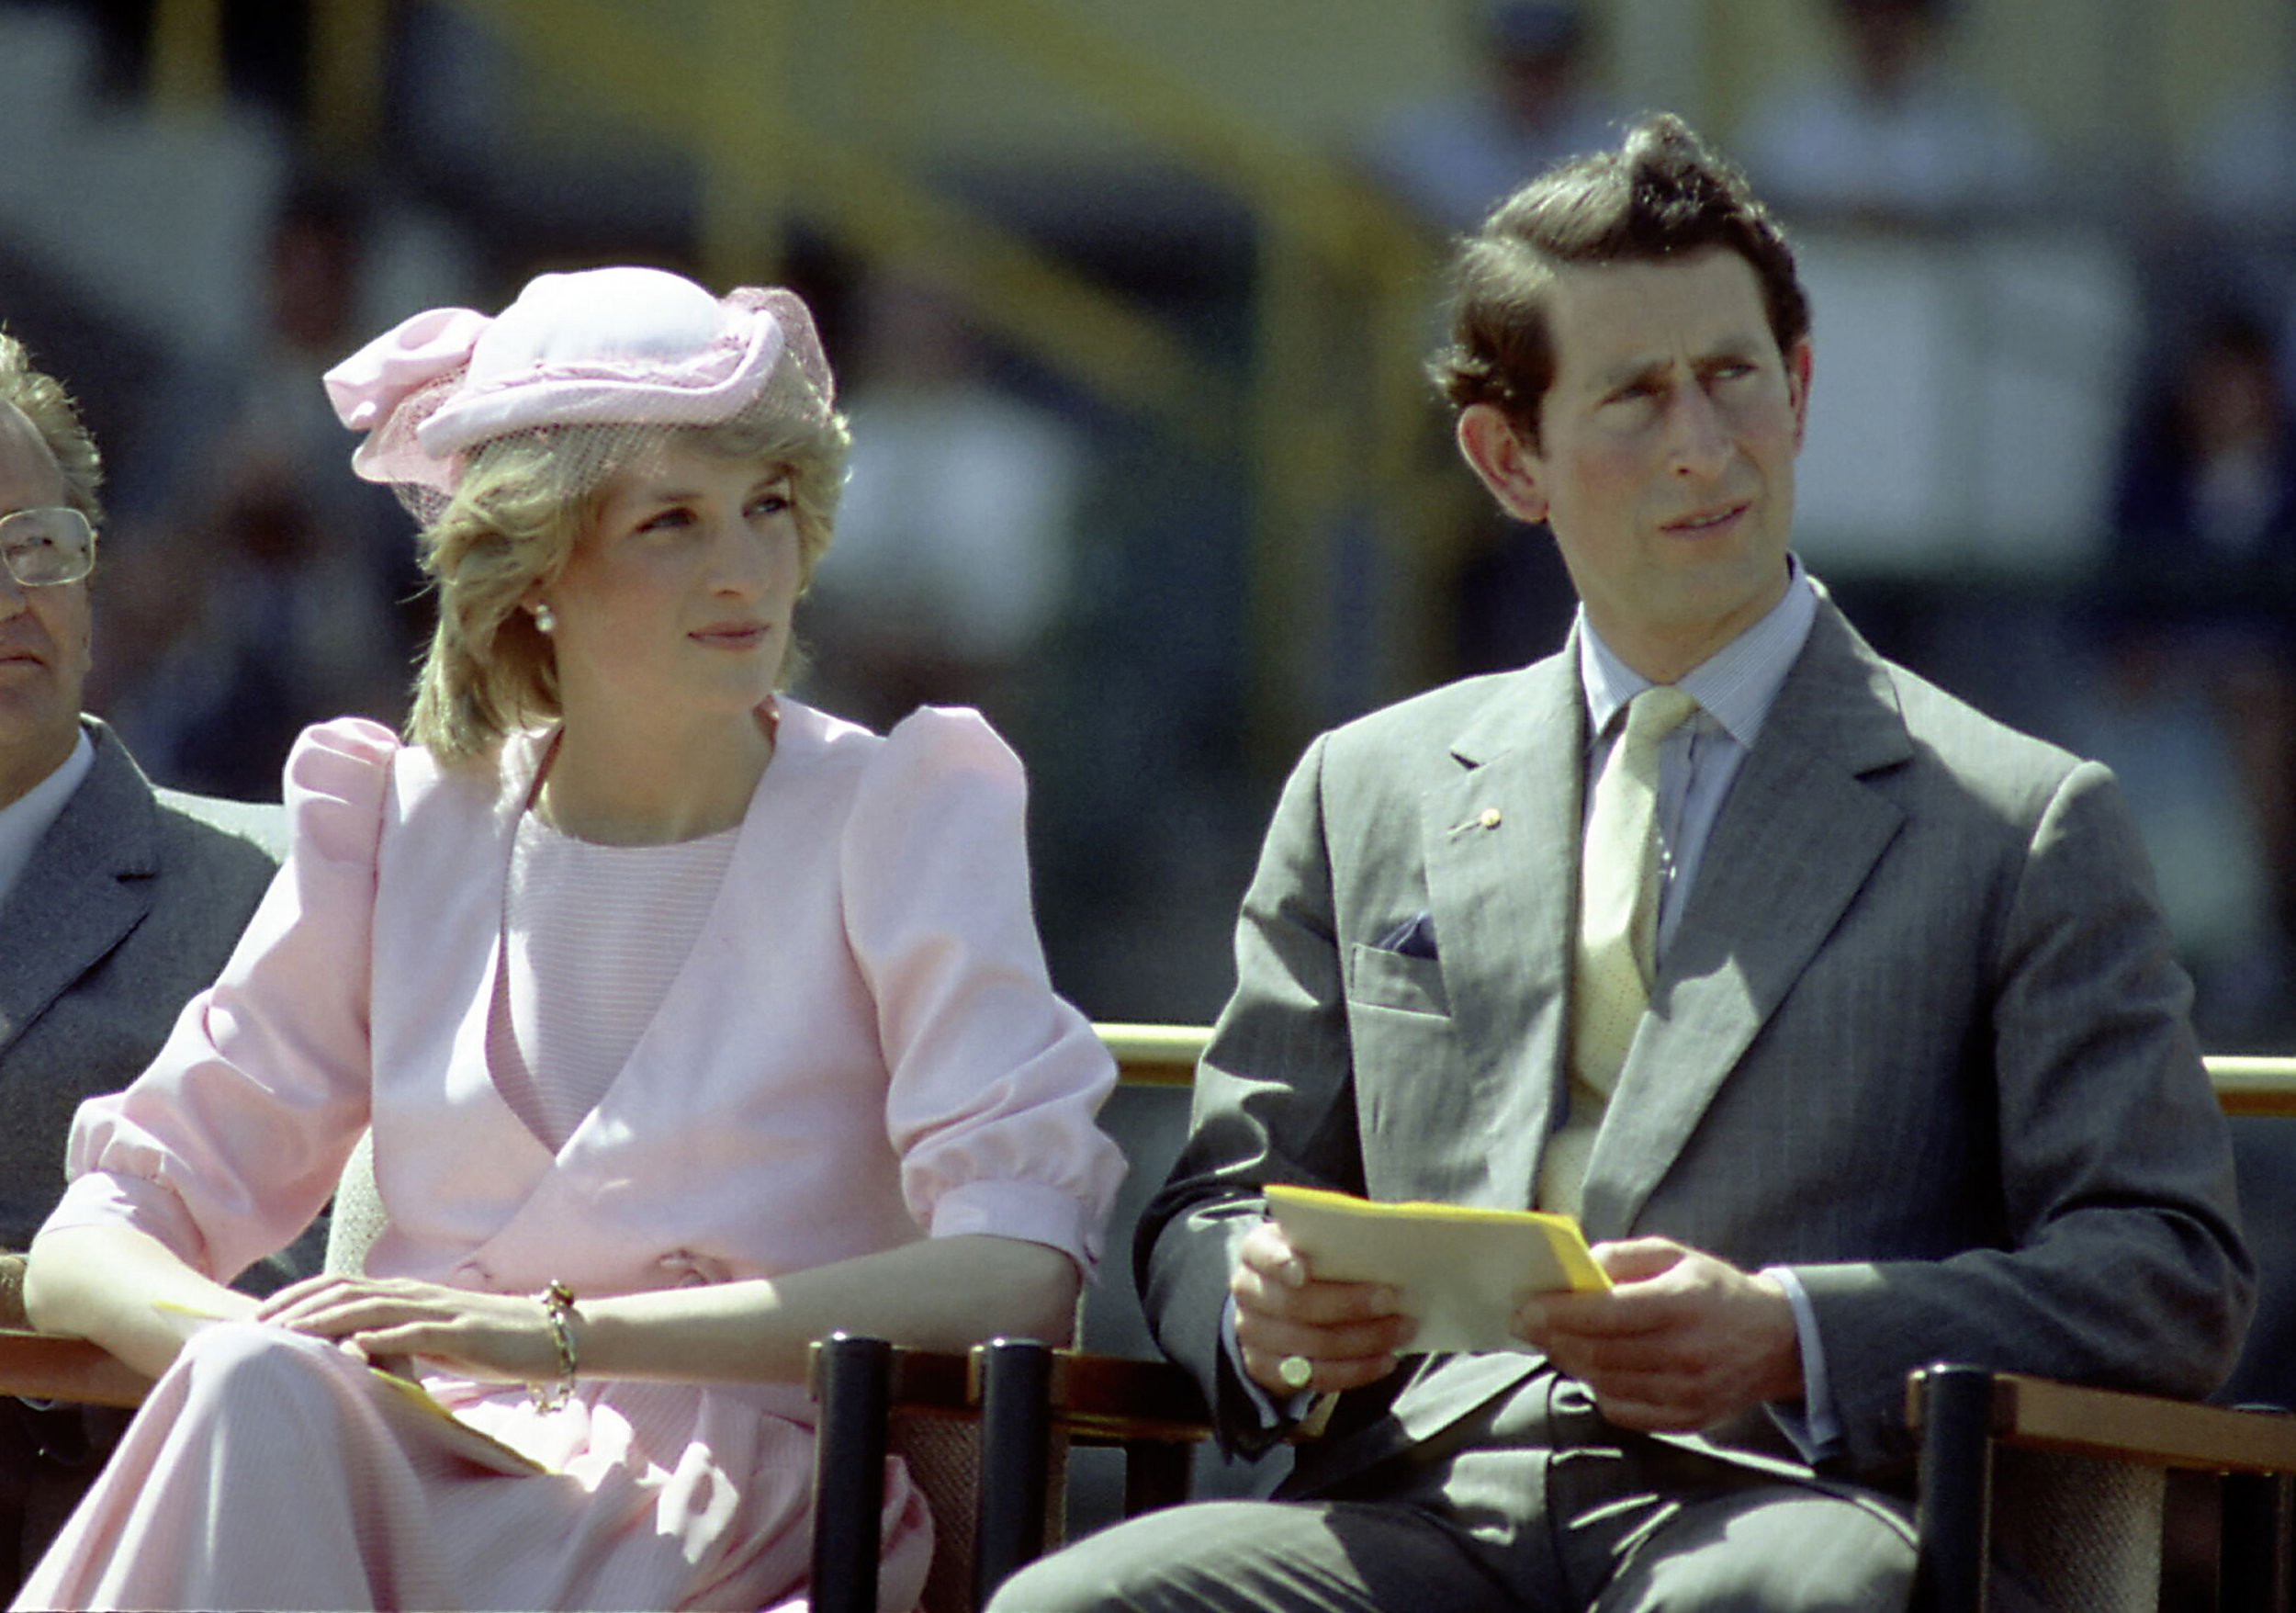 Princess Diana and Prince Charles in Australia 1983